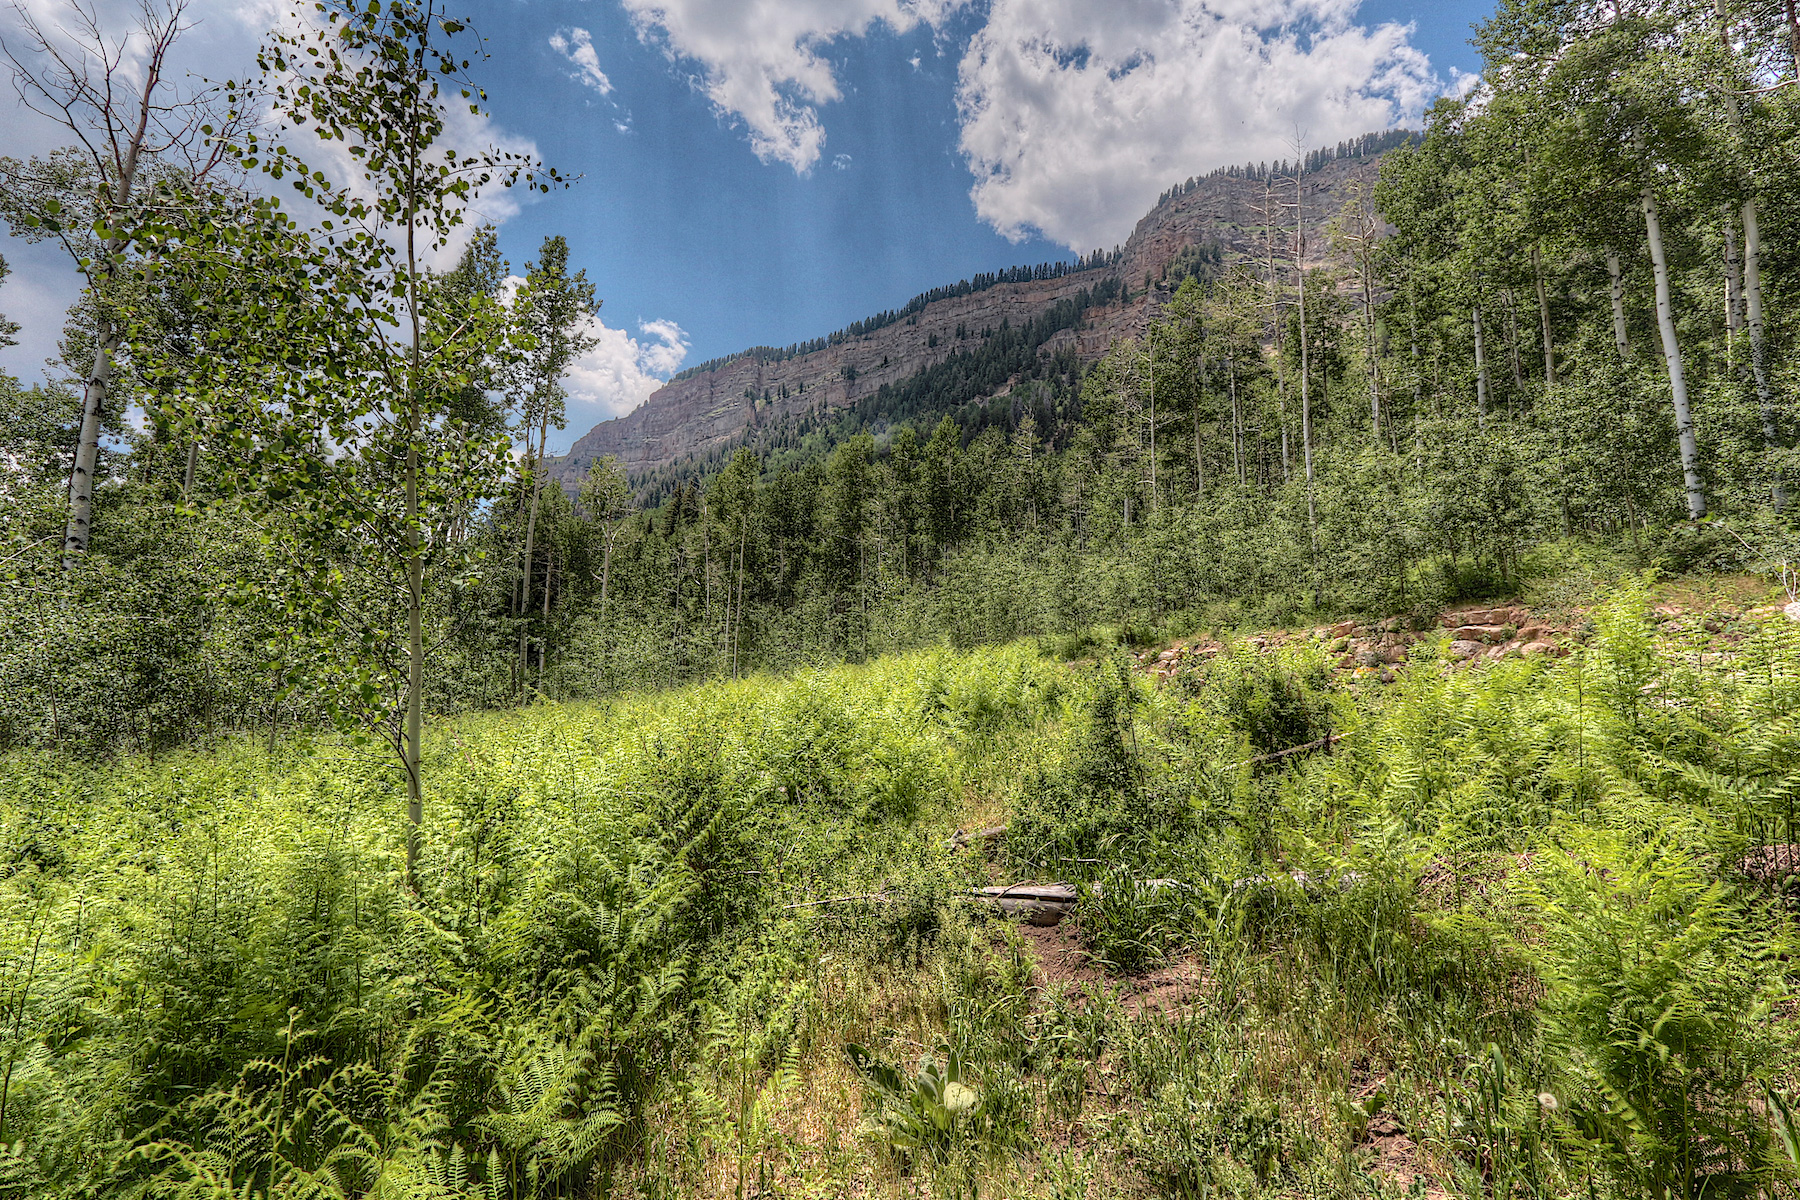 Additional photo for property listing at 204 Wilshire Drive 204 Wilshire Drive Durango, Colorado 81301 United States